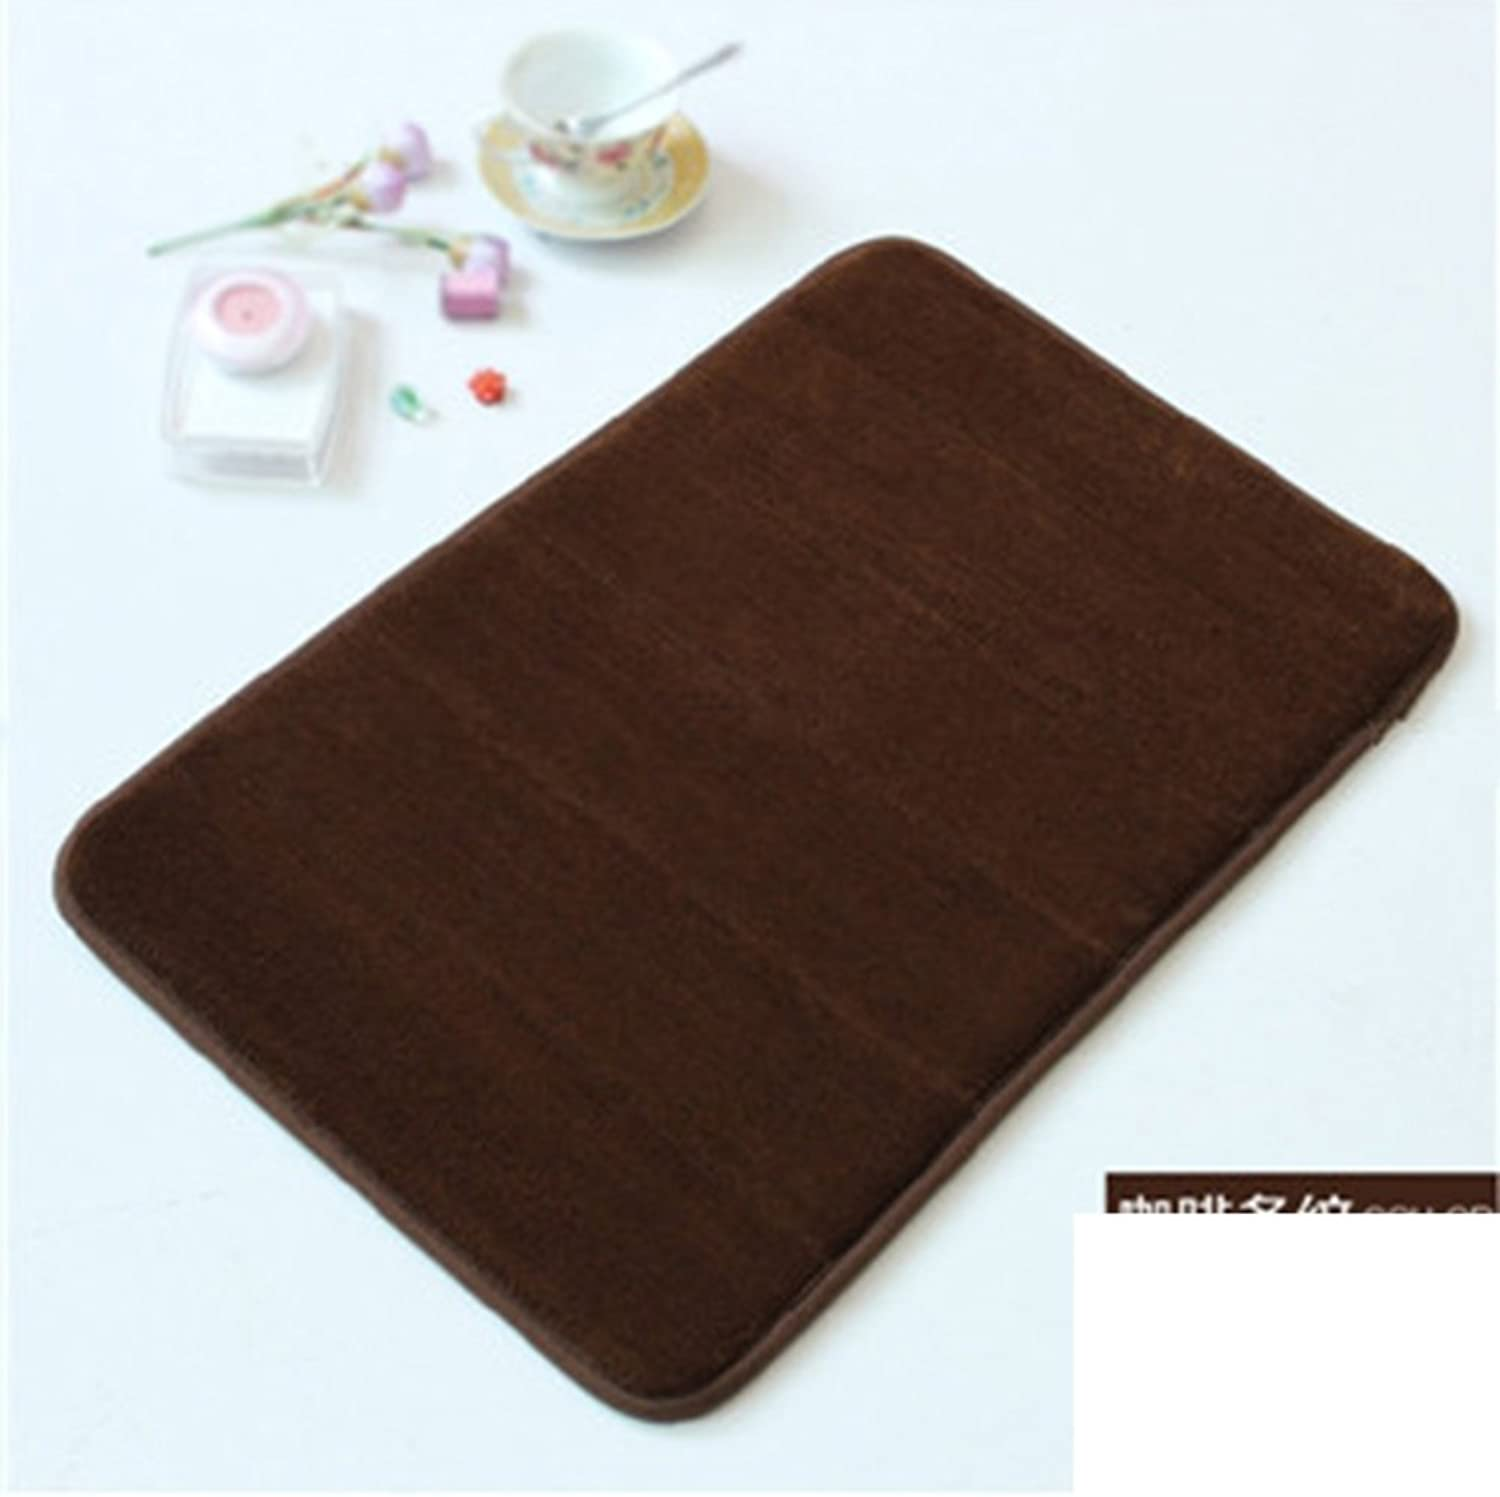 DXG&FX Toilet door thickened mat water absorption and anti-skidding mat foot pad-A 80x120cm(31x47inch)